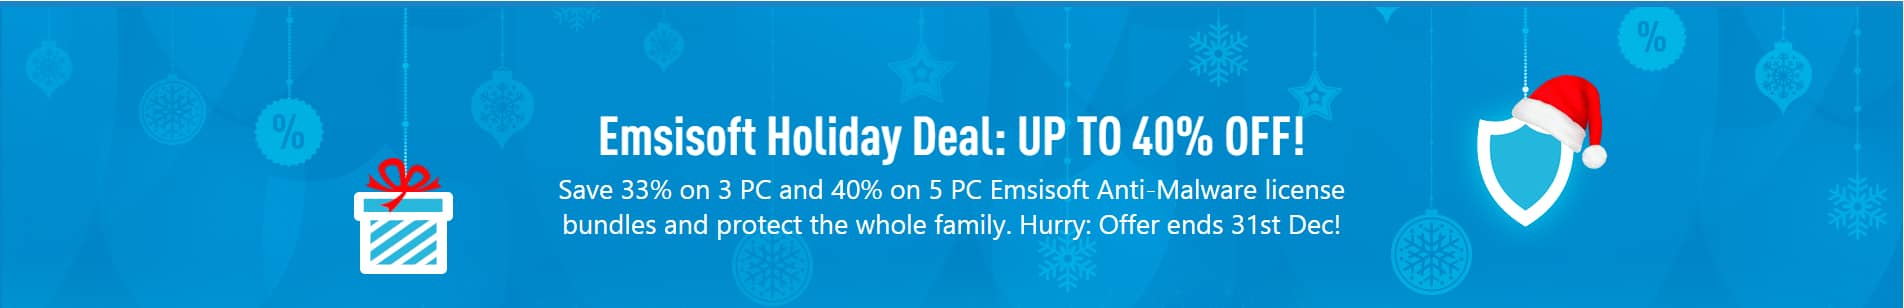 Emsisoft Anti-Malware anti-virus 3 pc license for $39.96 and 5 pc license for $59.85